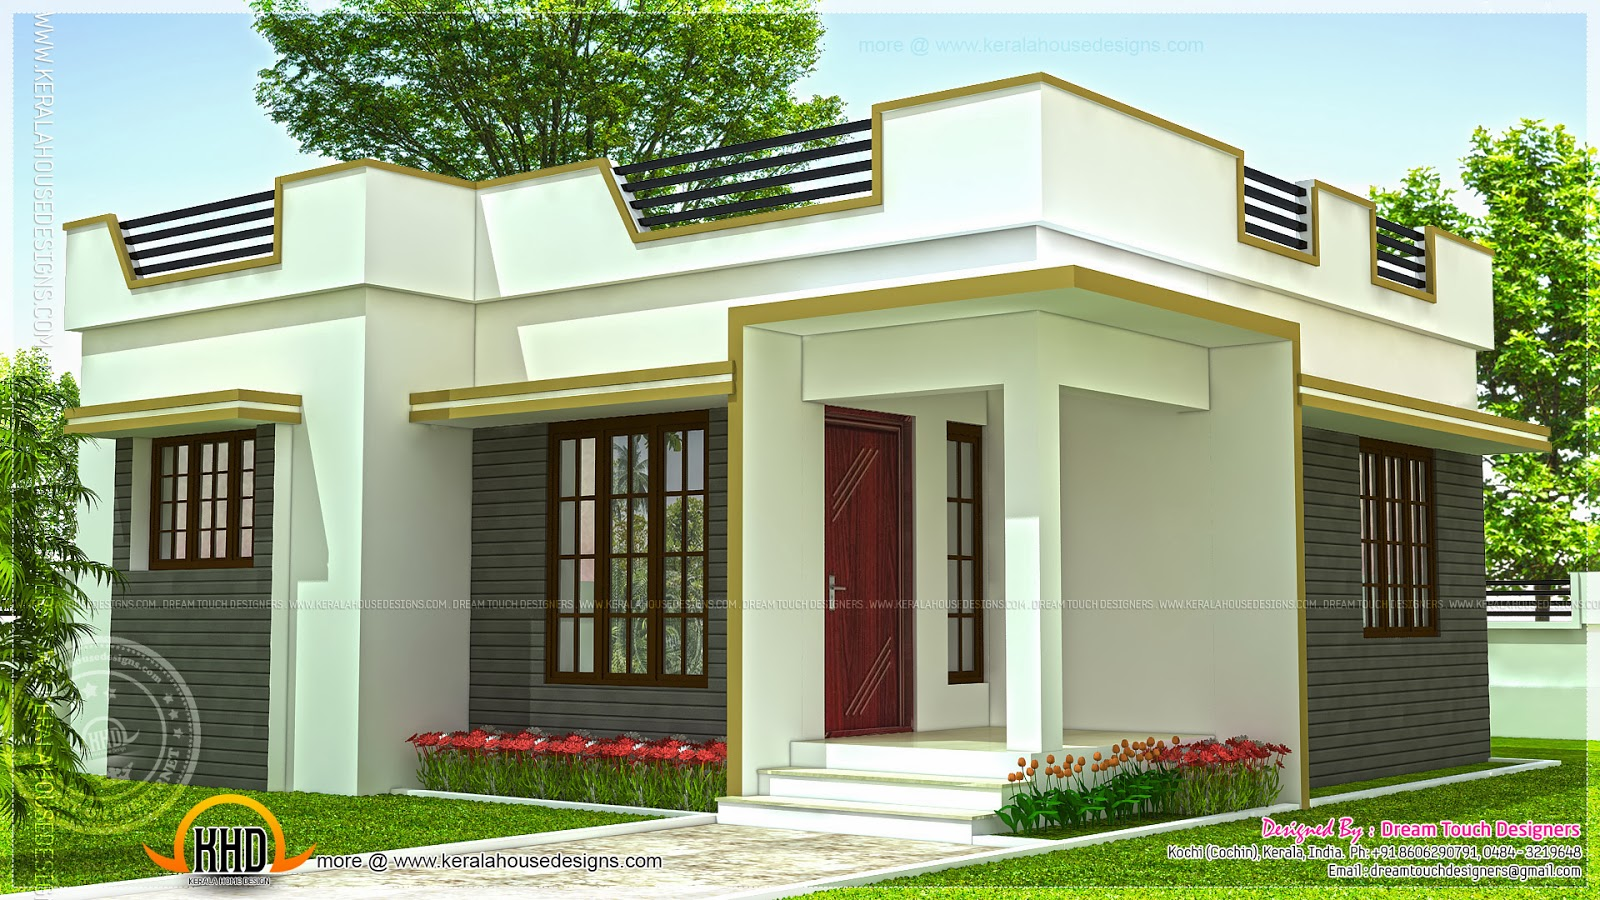 House design half cement - House Design Half Cement 25